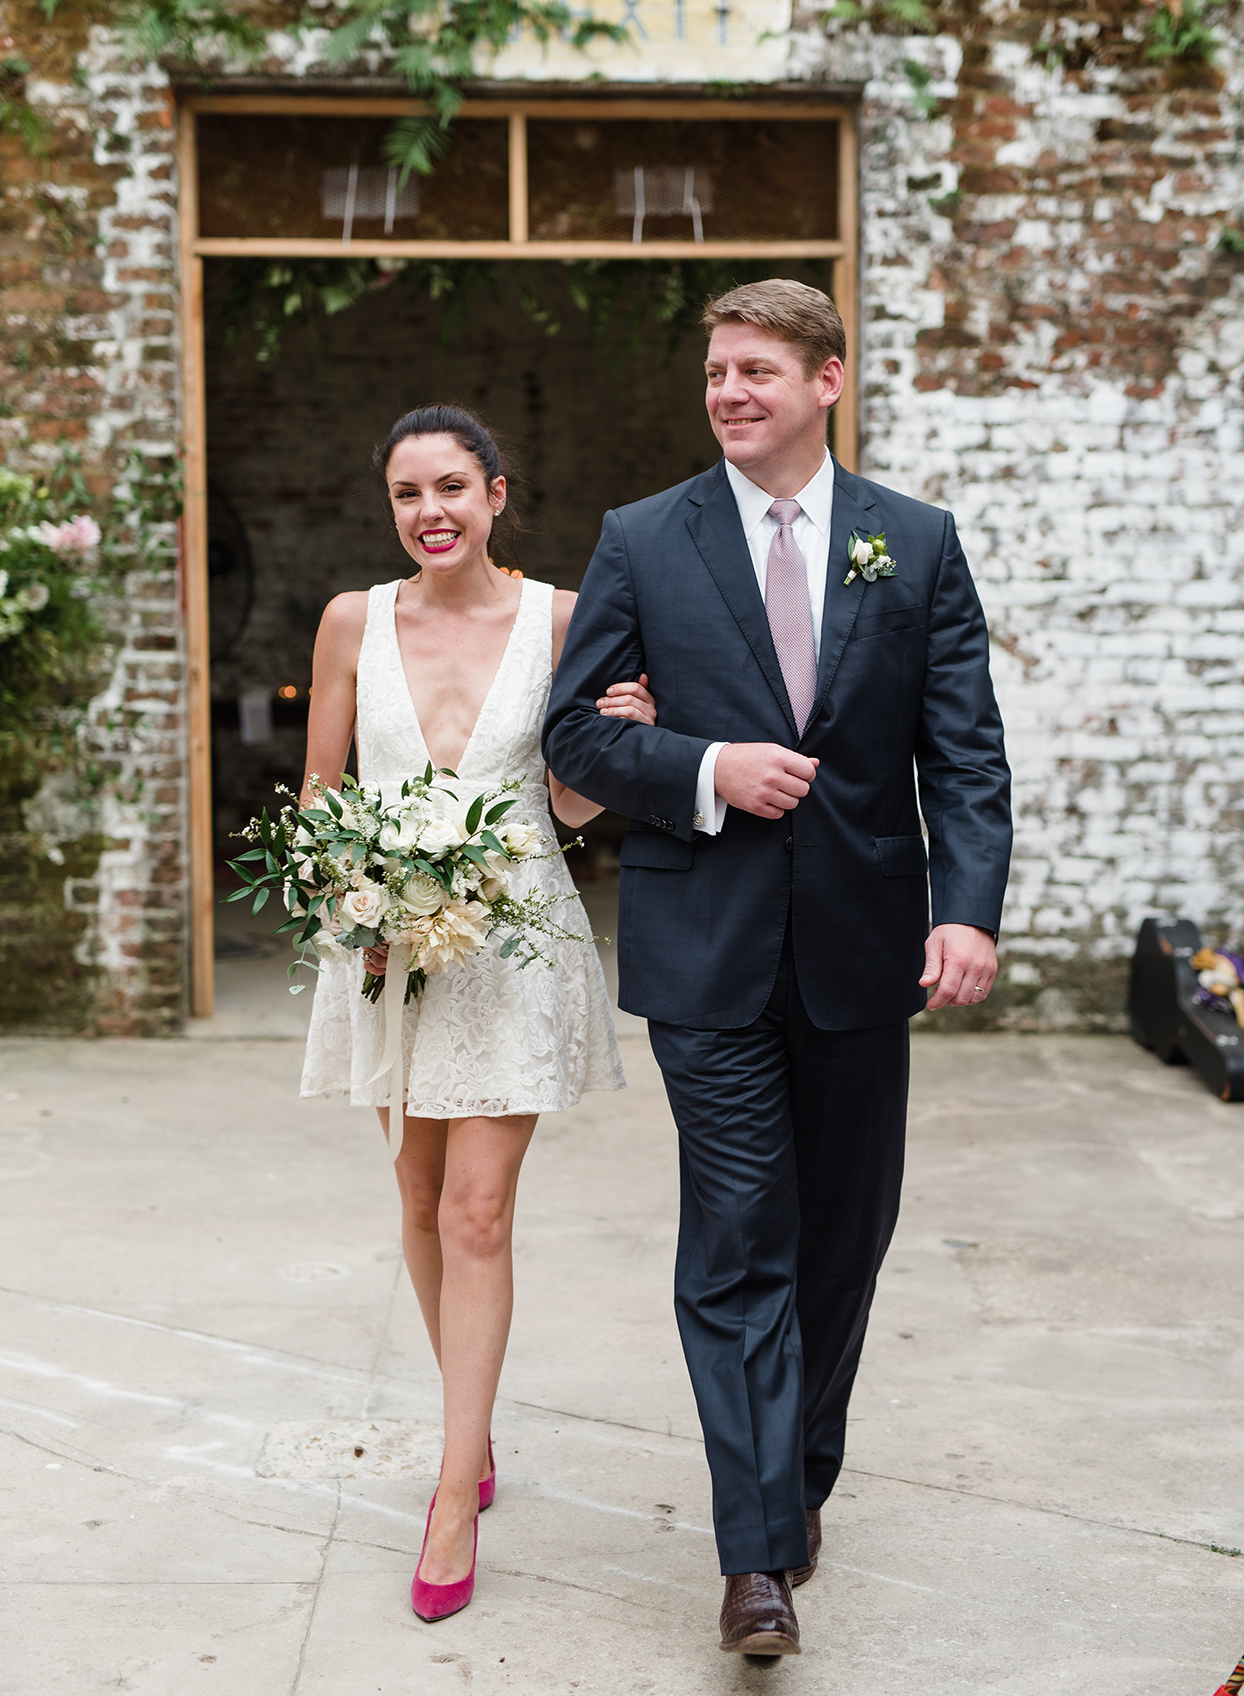 Bride walking down aisle with brother